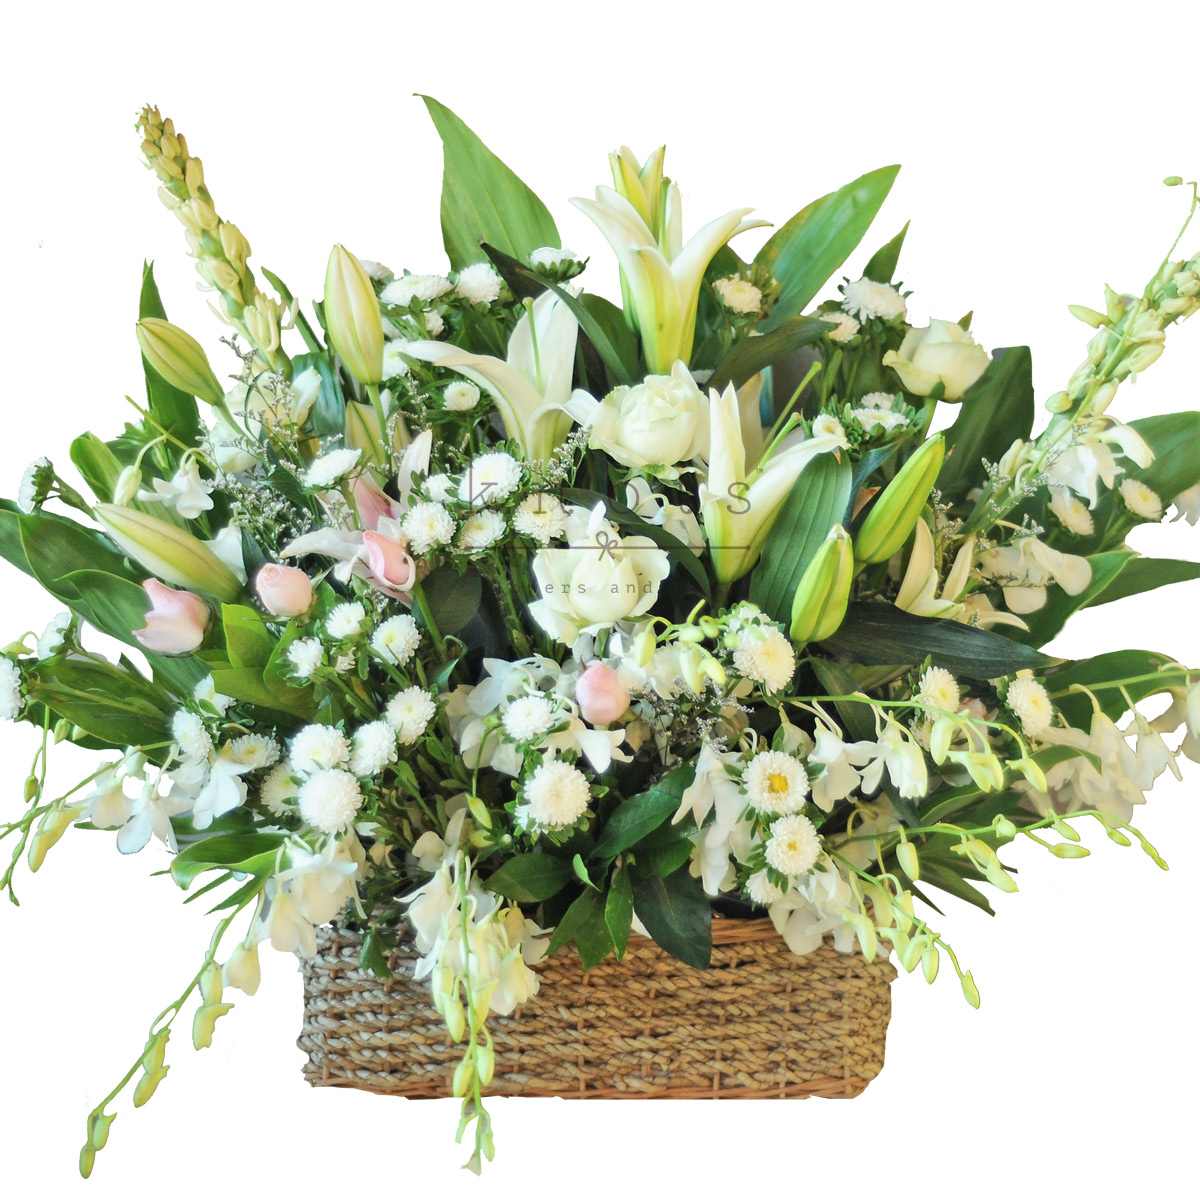 Sympathy Flower Basket Arrangement